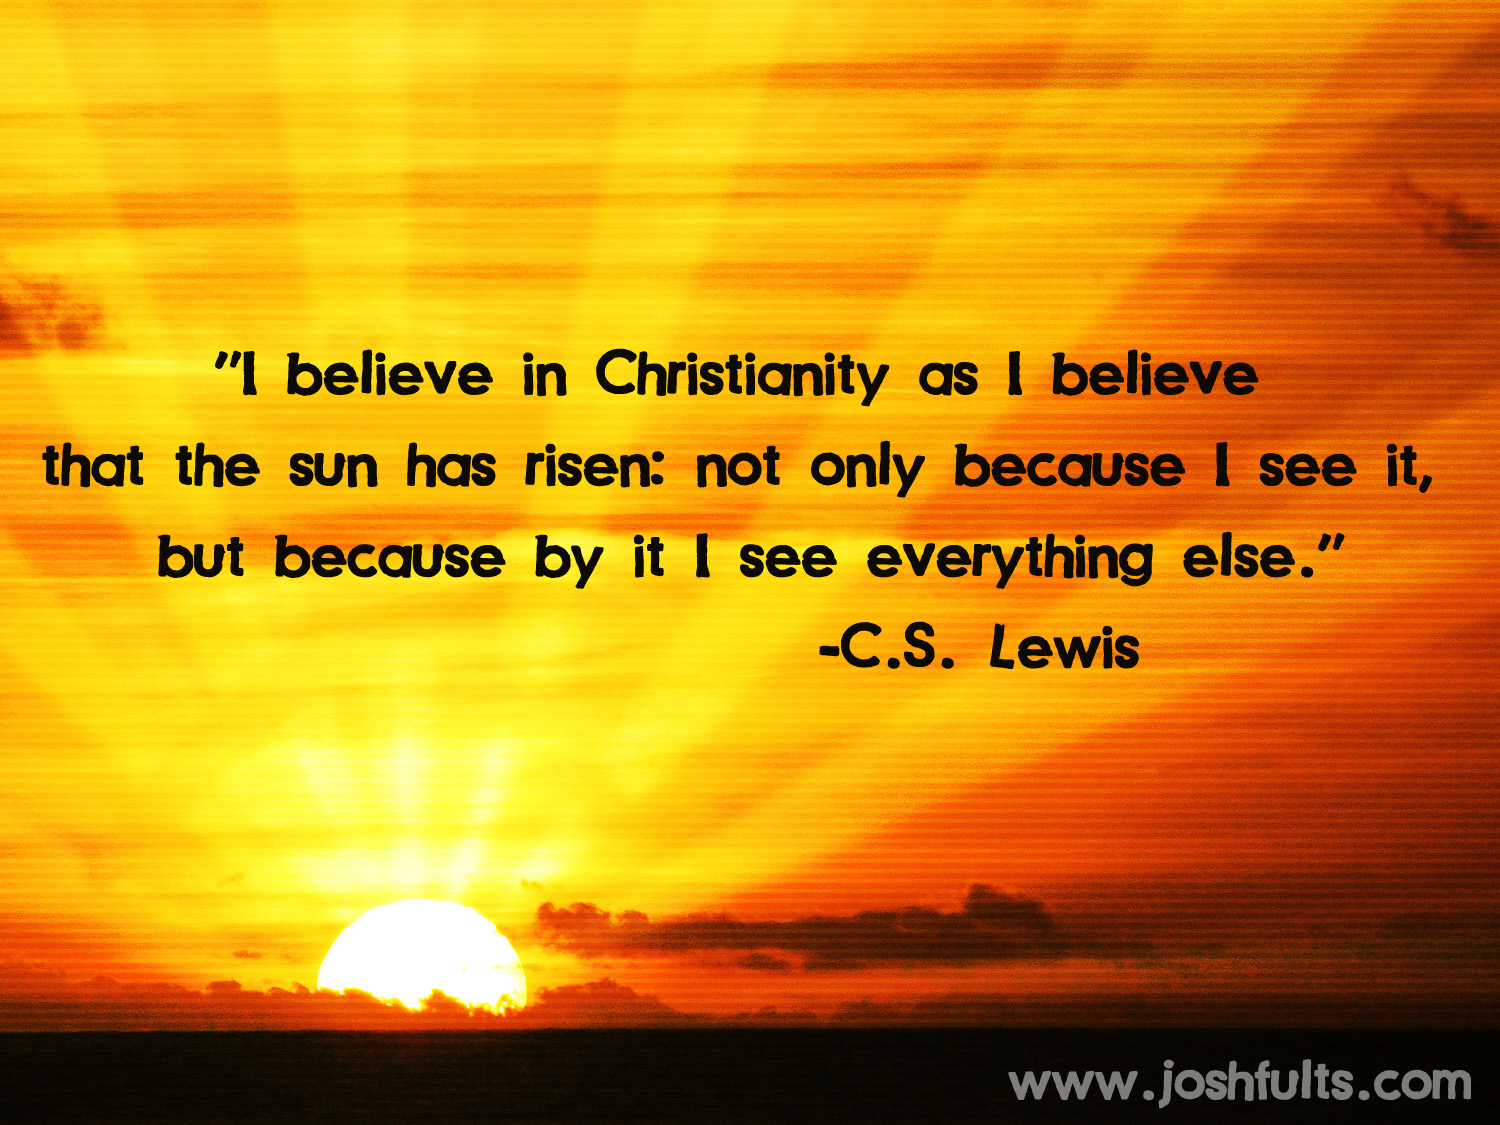 """ I Believe In Christianity As I Believe That The Sun Has Risen, Not Only Because I See It, But Because By It I See Everything Else "" - C.S. Lewis"